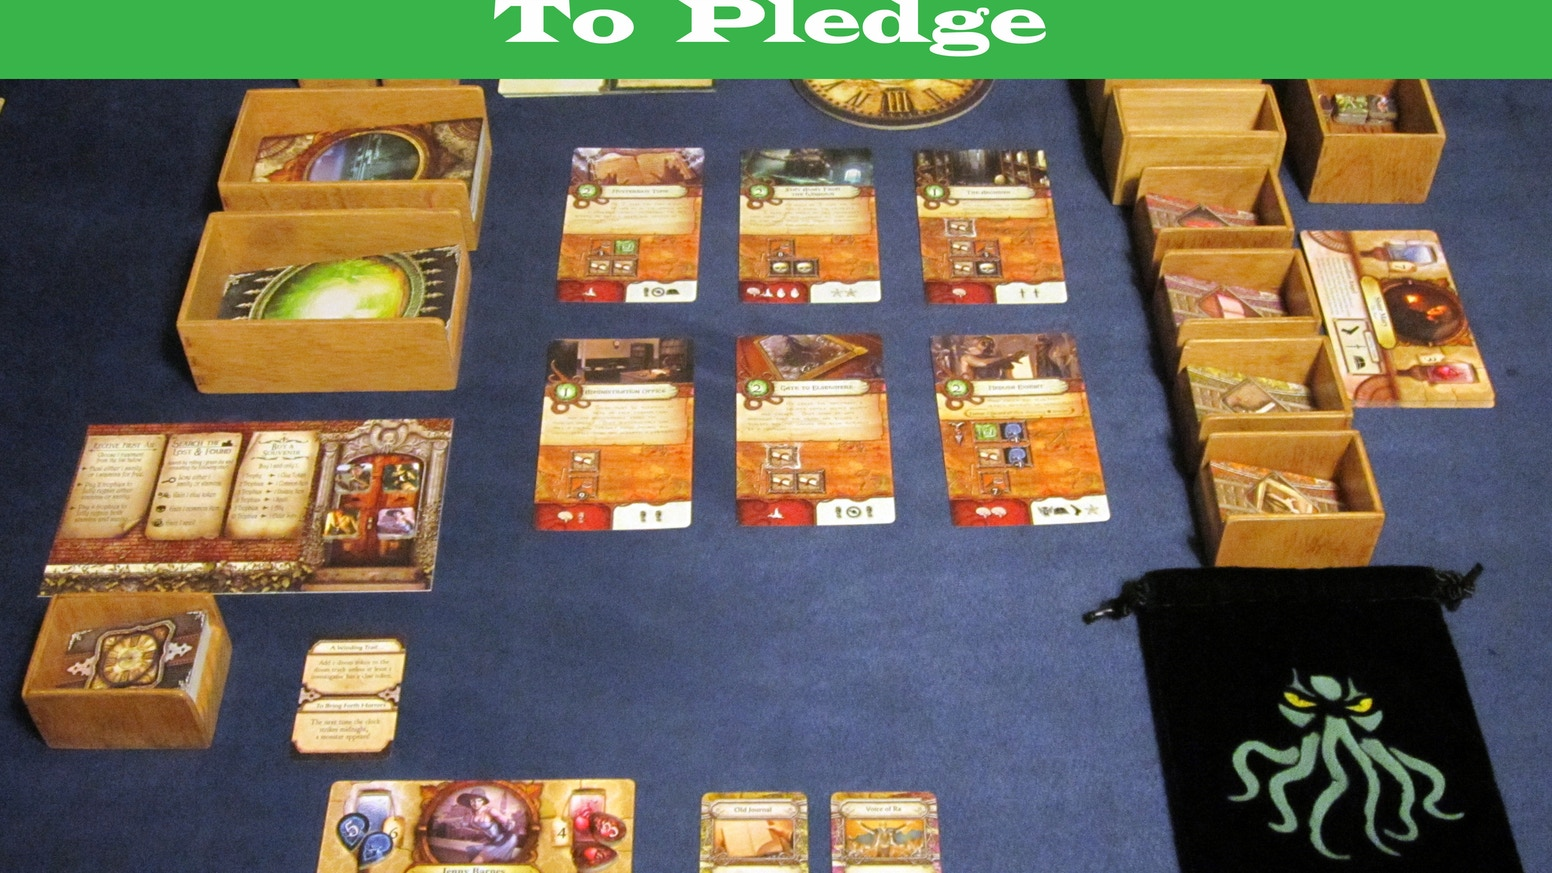 Elder Sign storage solutions are now available at ReadyToPlayStorage.com